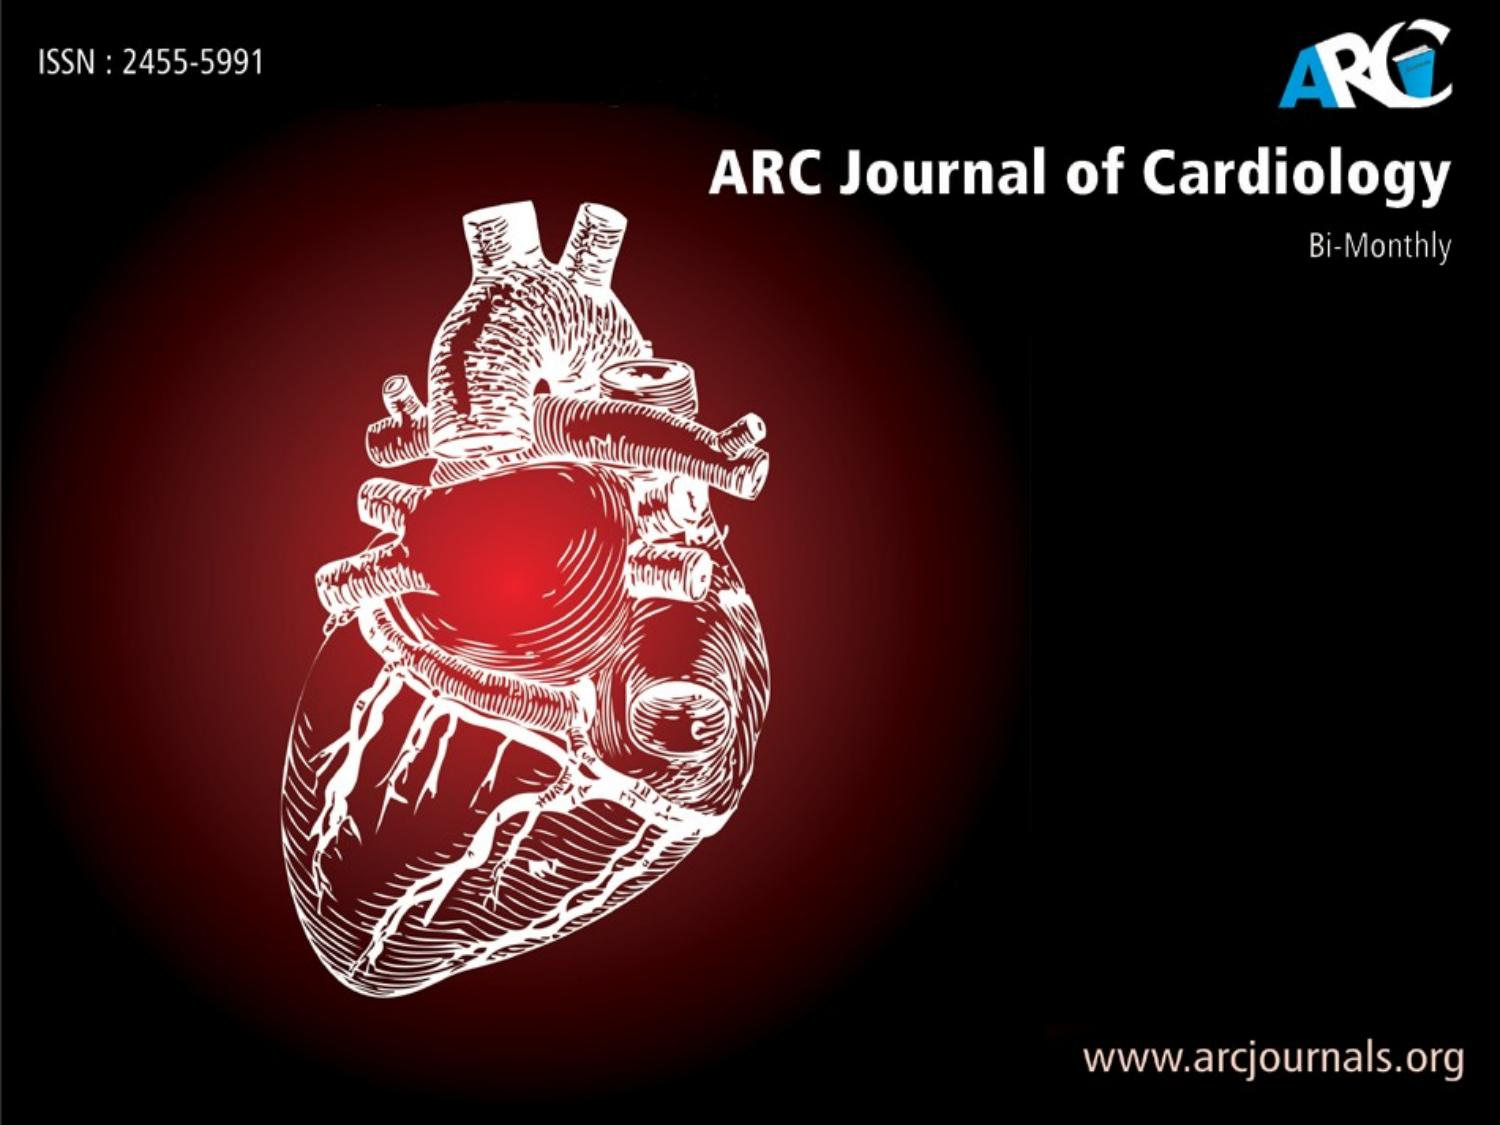 ARC Journal of Cardiology - ARC Journals by ARC Journals - issuu